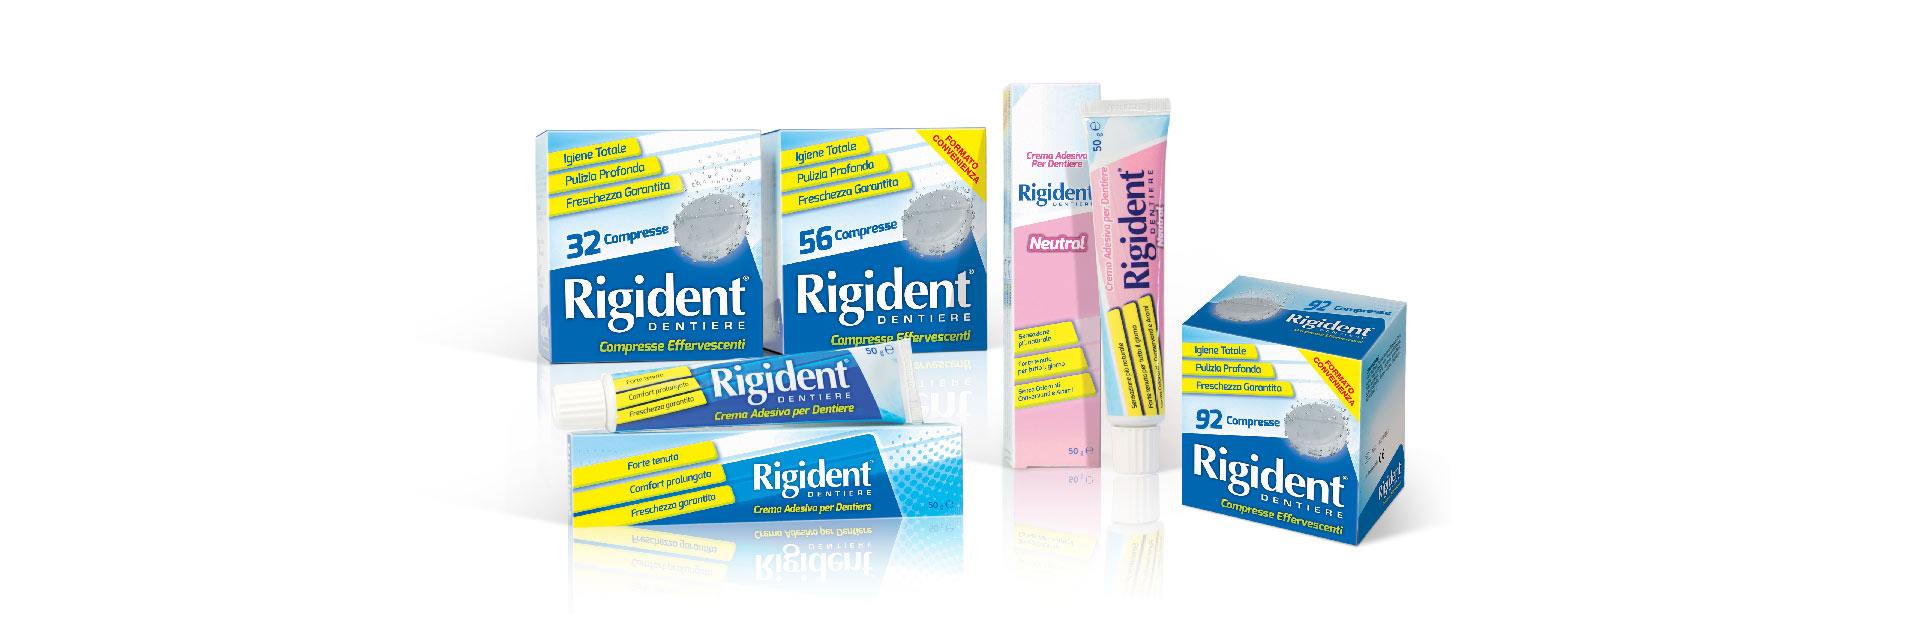 Rigident®: the business product line.